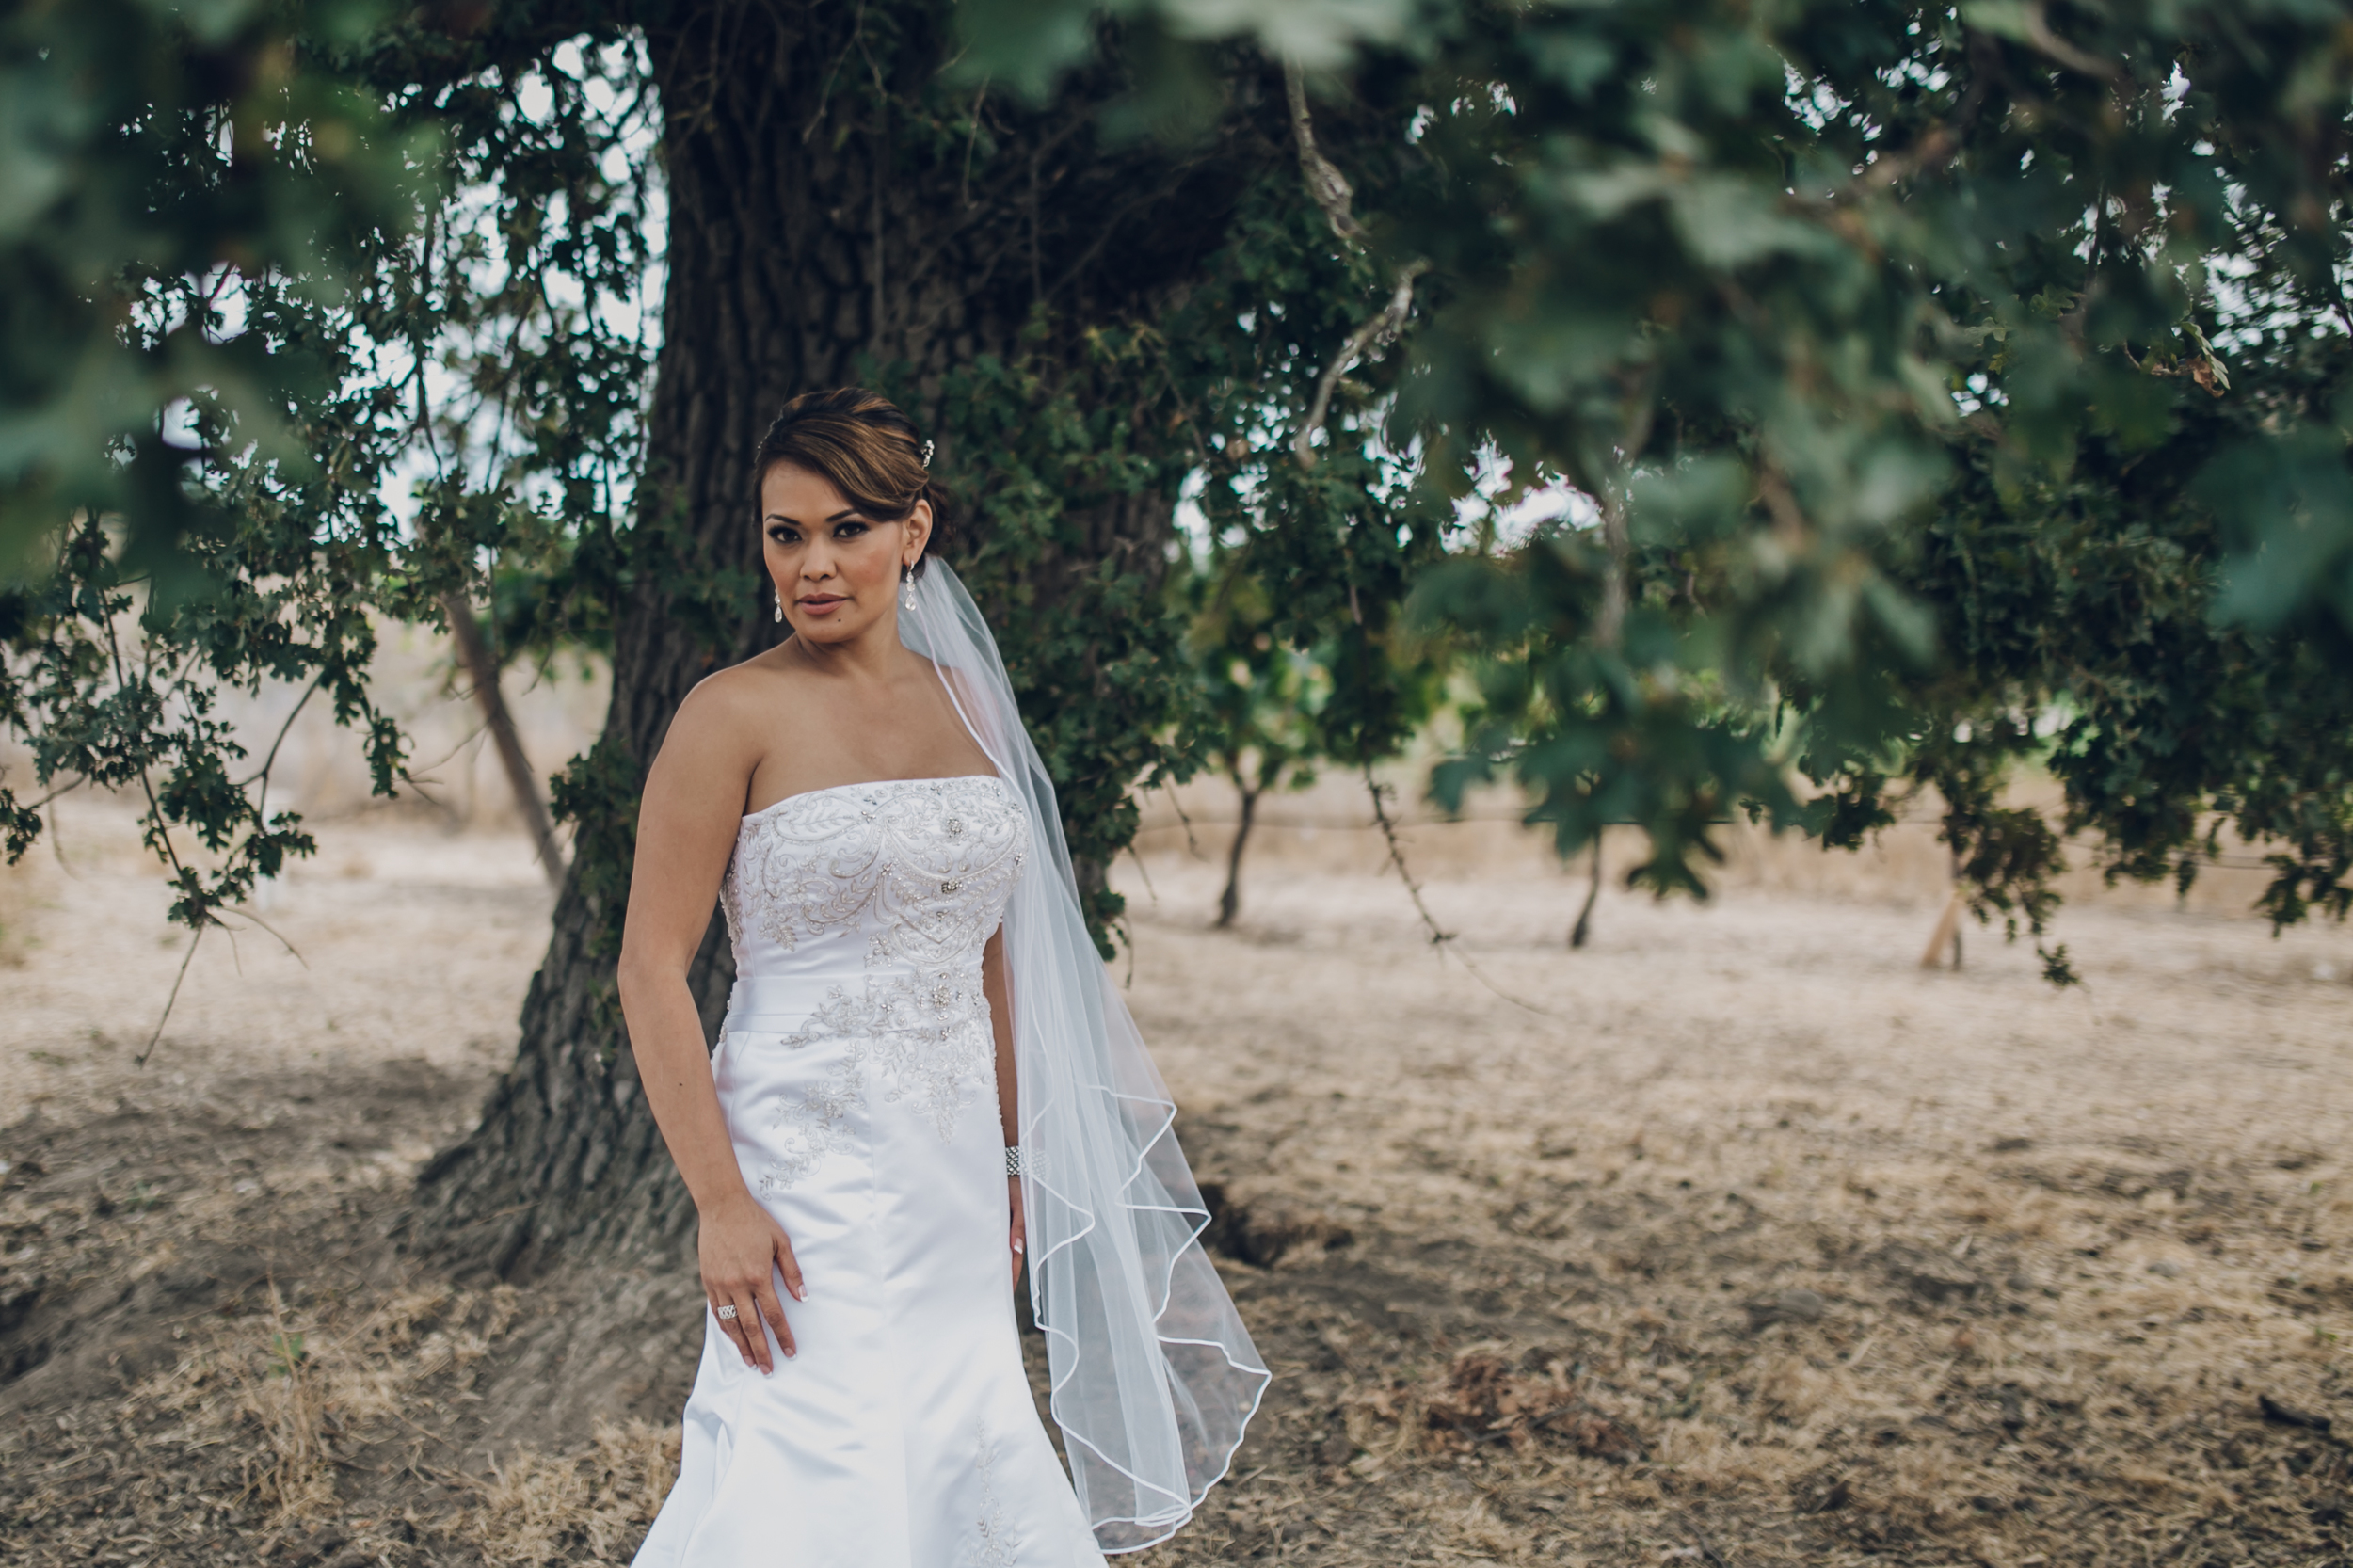 Shiela + Lester's Wedding 9-30-15 893.jpg